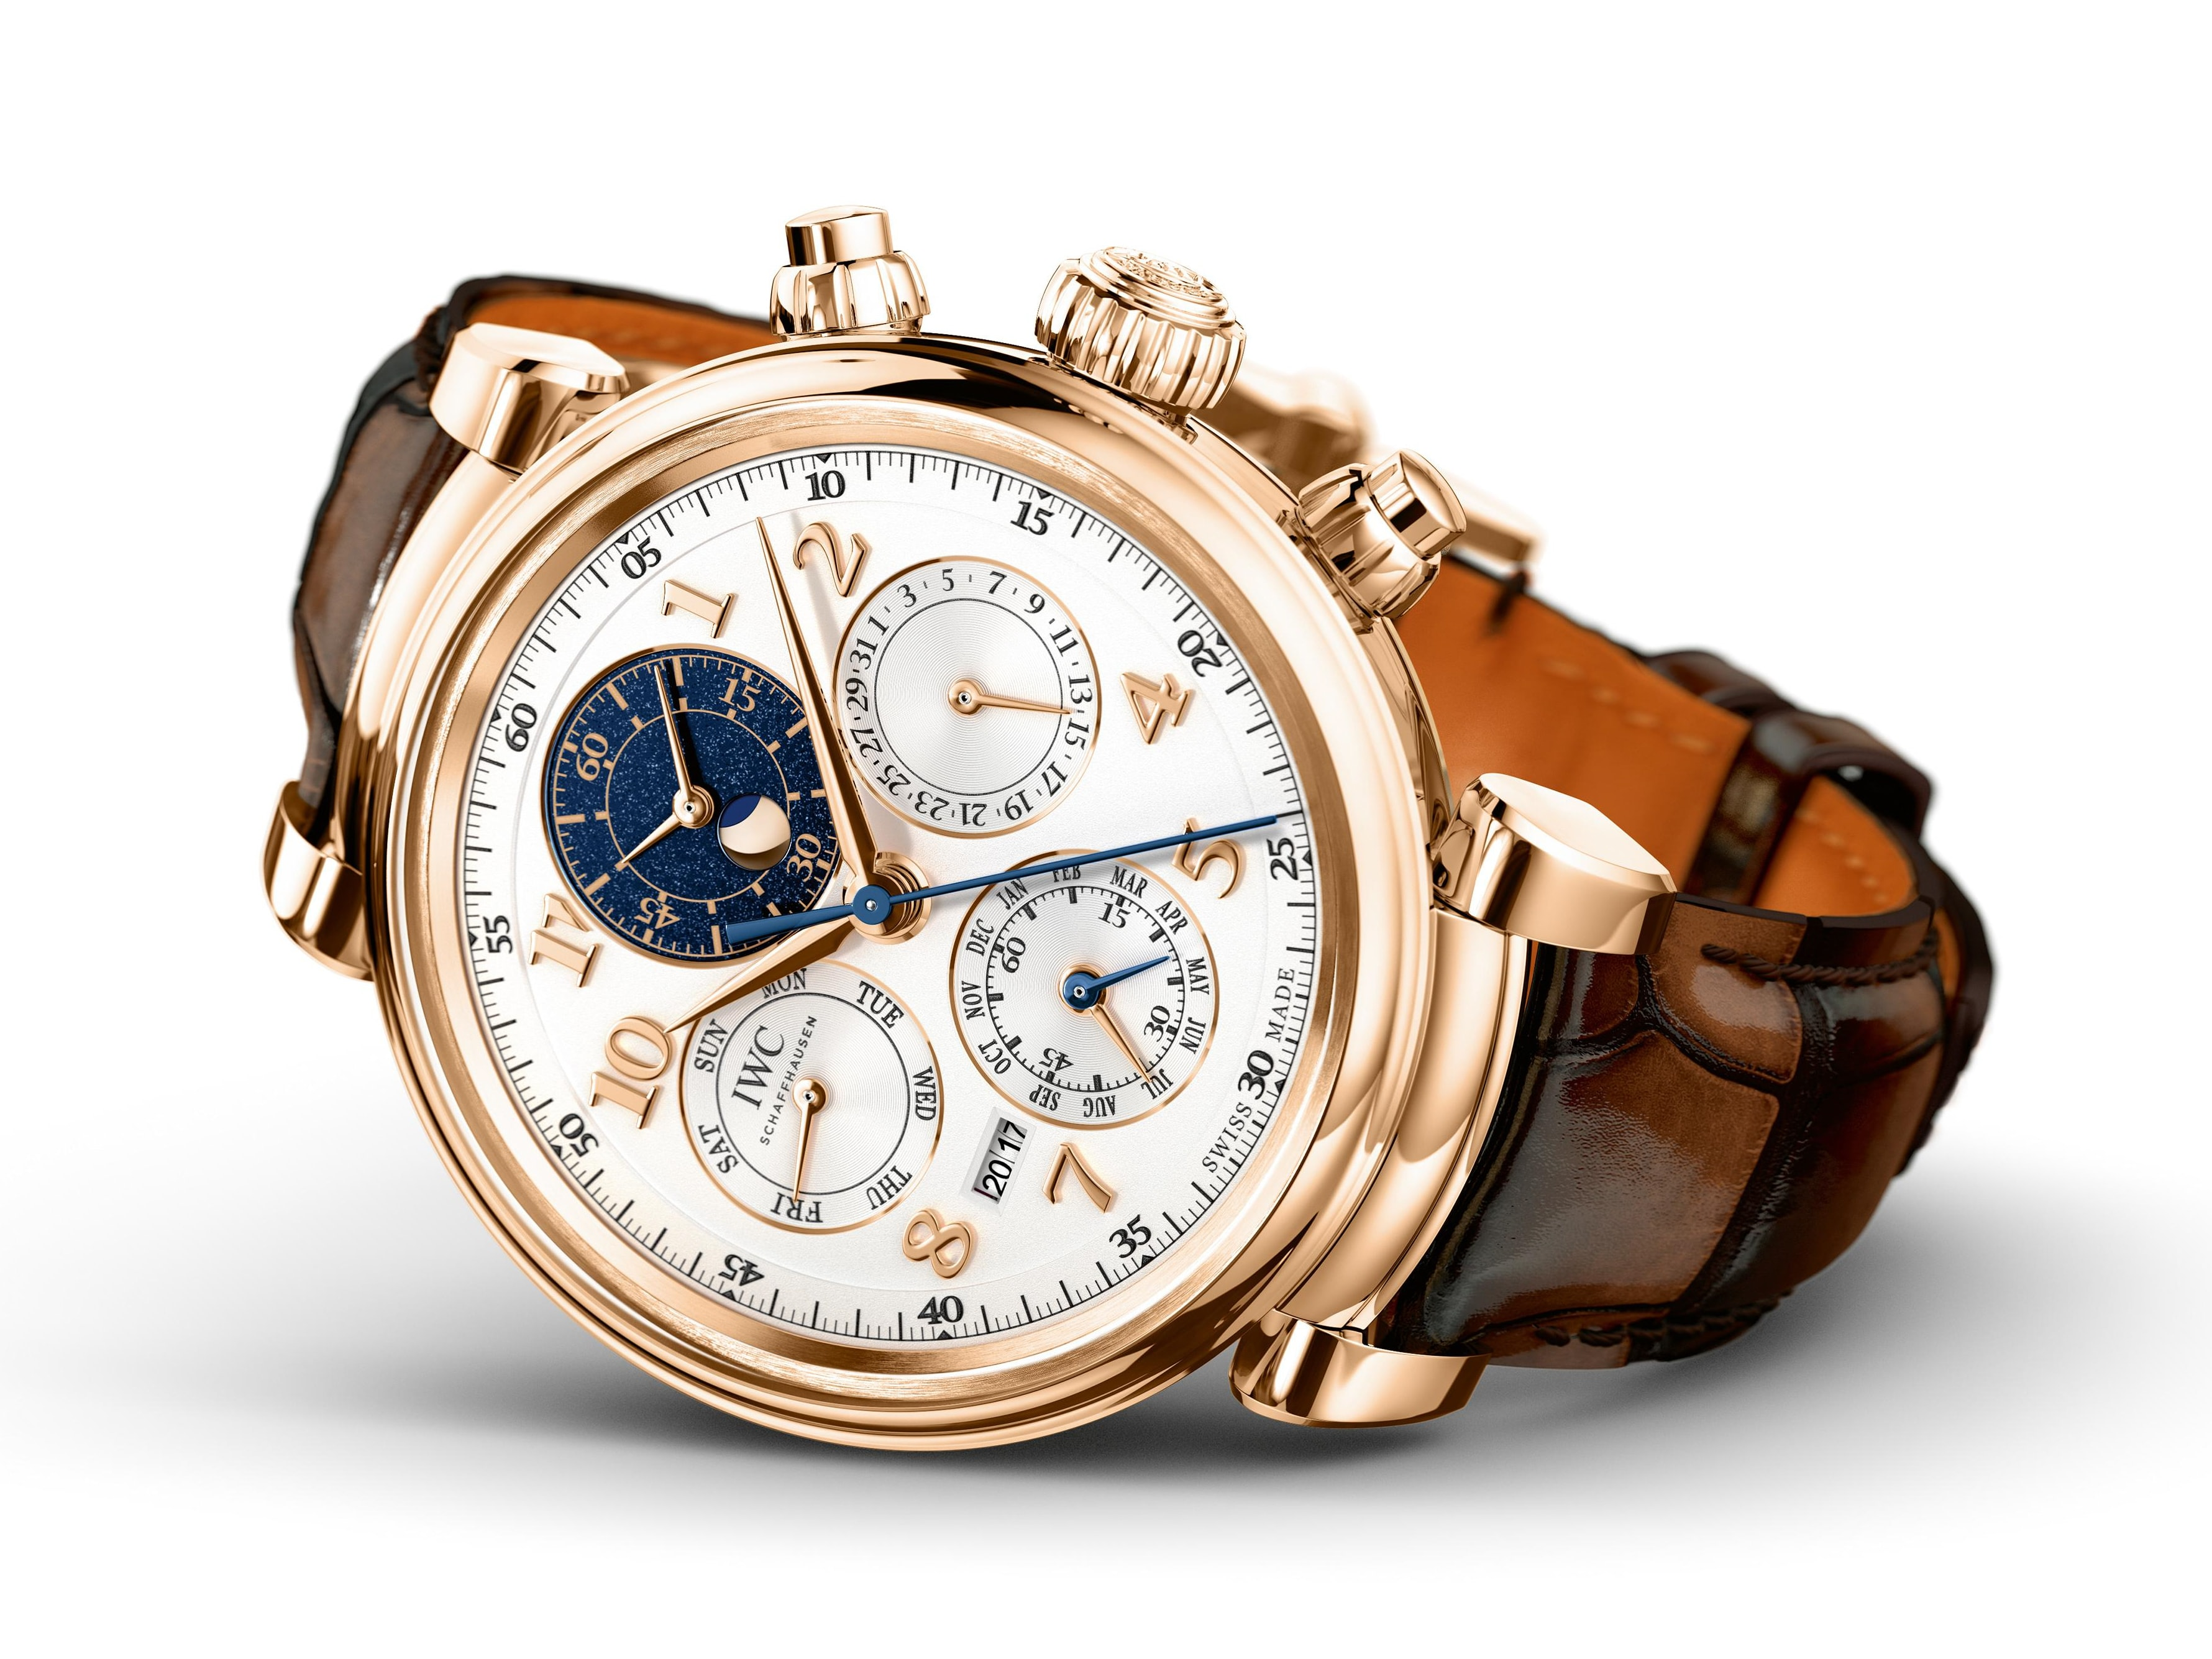 IWC Perpetual Calendar Chronograph Ref. IW392101 Introducing: Three New Da Vinci Watches From IWC, Including 2 Ladies' Timepieces, And A New Da Vinci Perpetual Chronograph Introducing: Three New Da Vinci Watches From IWC, Including 2 Ladies' Timepieces, And A New Da Vinci Perpetual Chronograph IW392101 Lifestyle